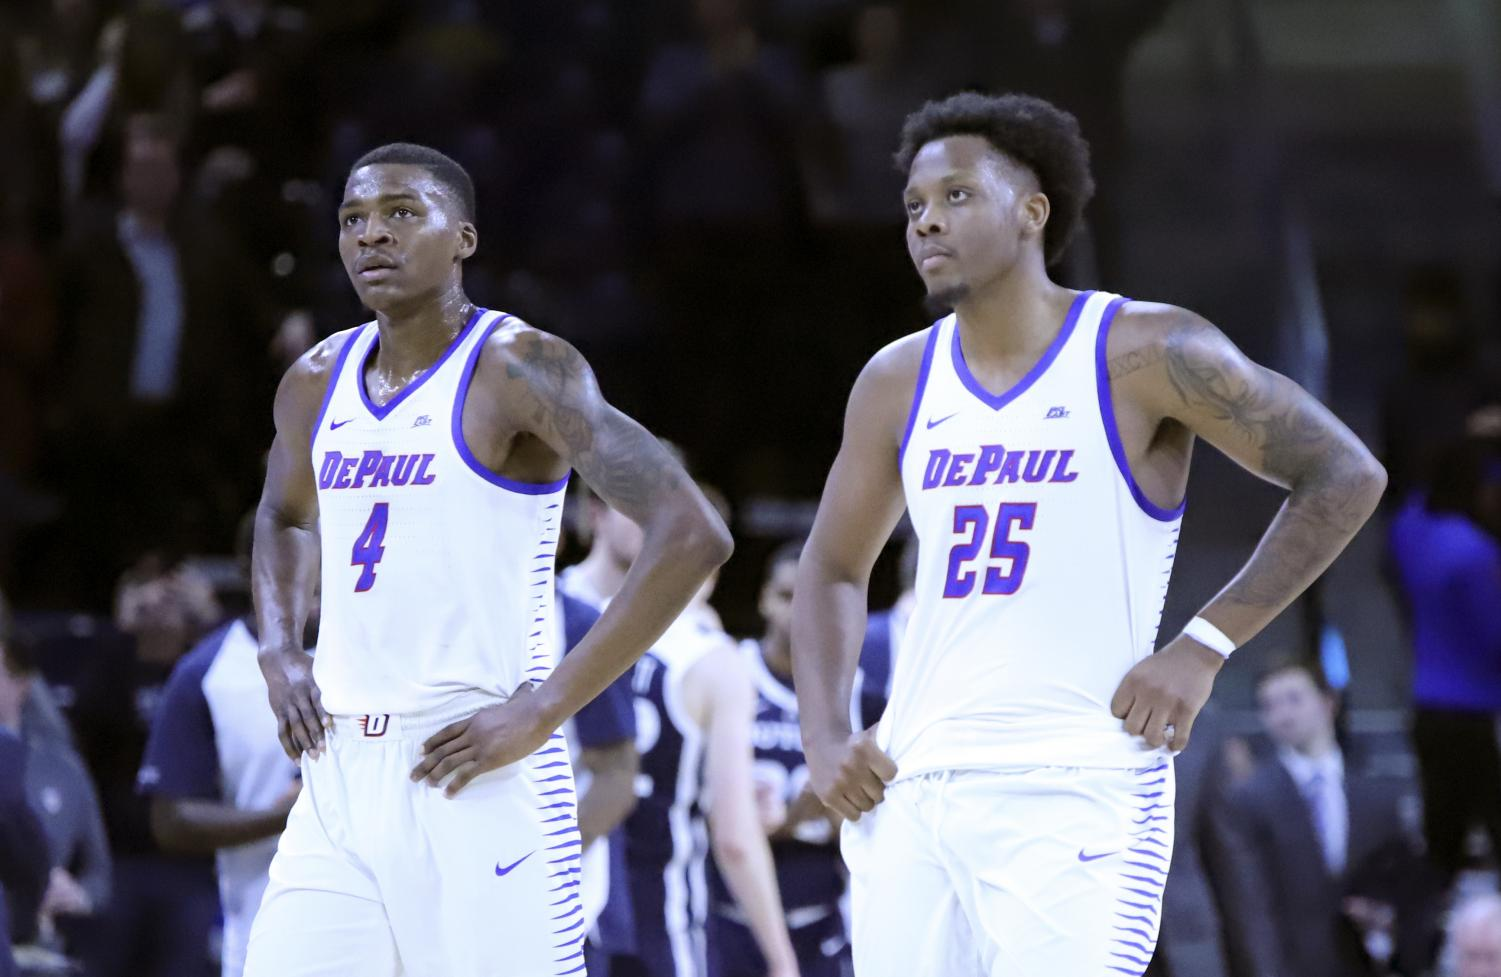 Sophomore forward Paul Reed and senior forward Femi Olujobi look on during DePaul's loss to Butler on Jan. 16 at Wintrust Arena.